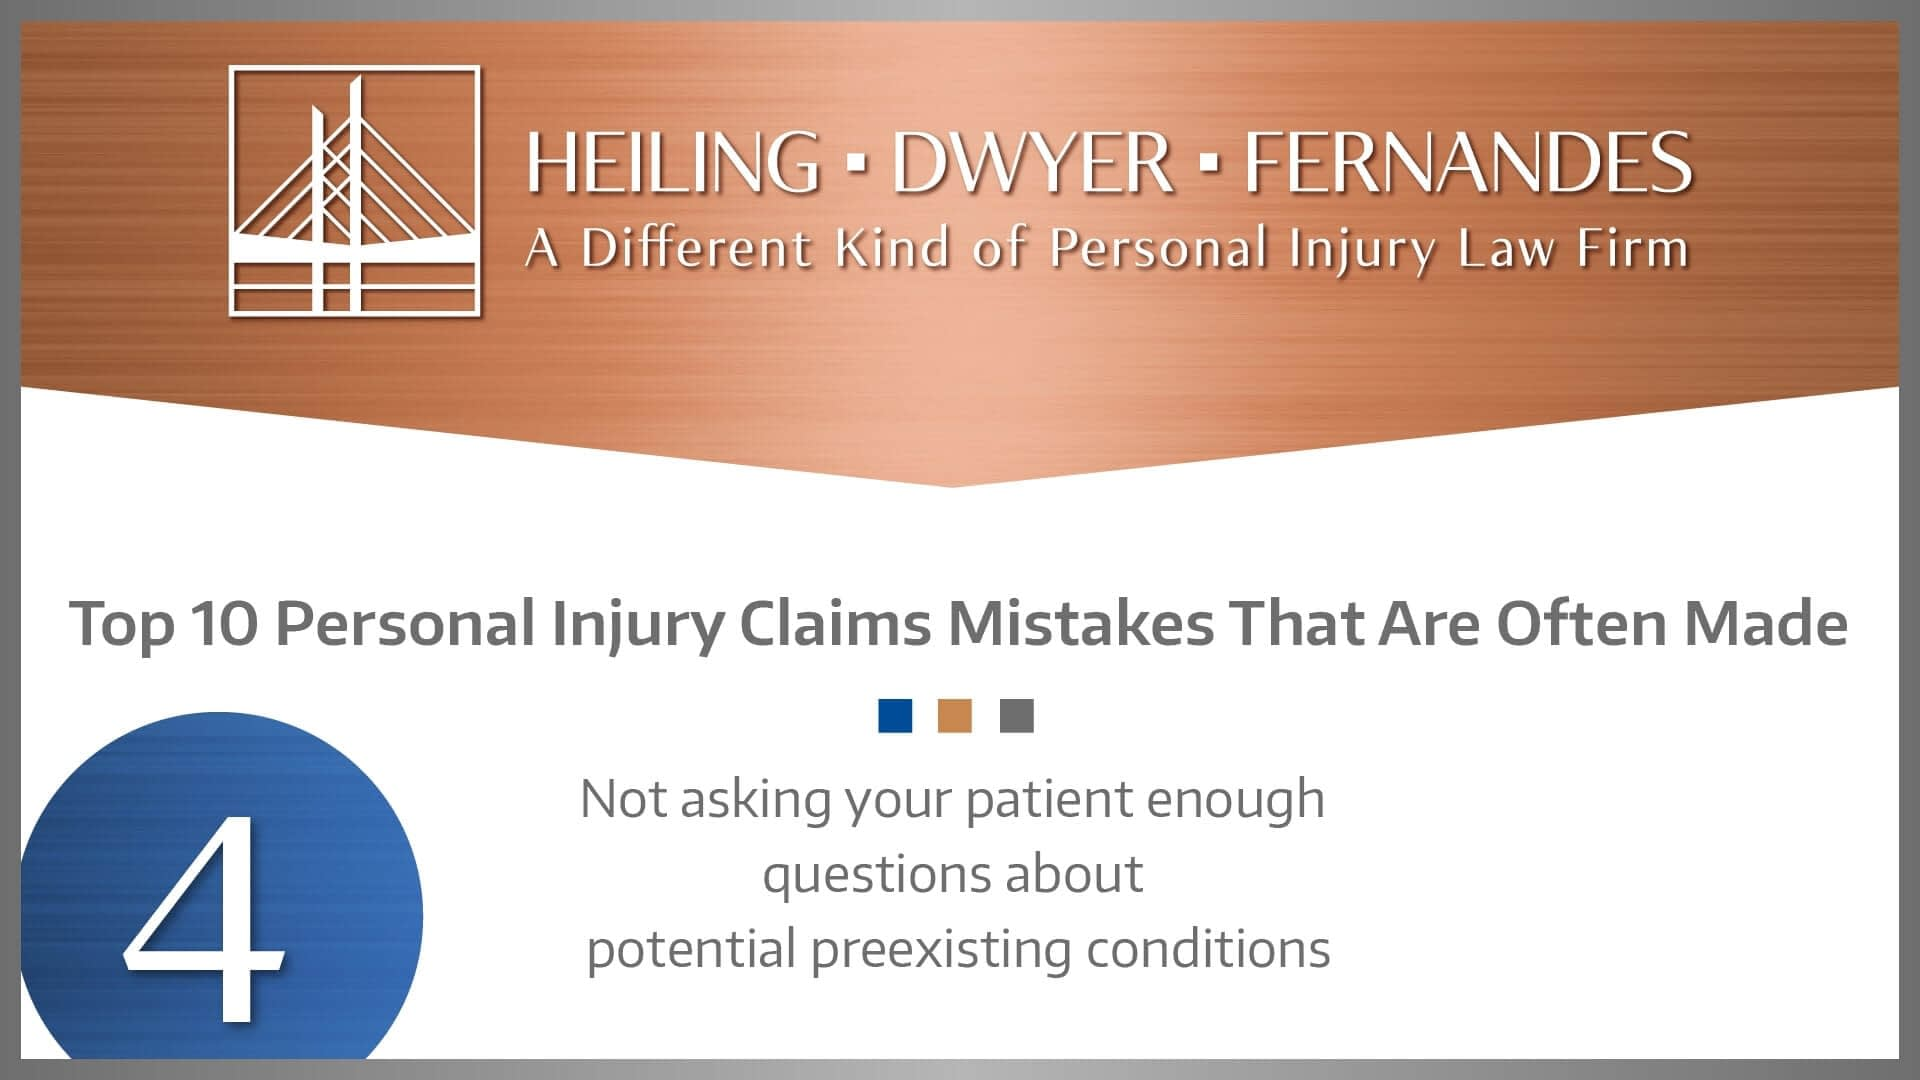 #4 MISTAKE: Not asking your patient enough questions about potential preexisting conditions